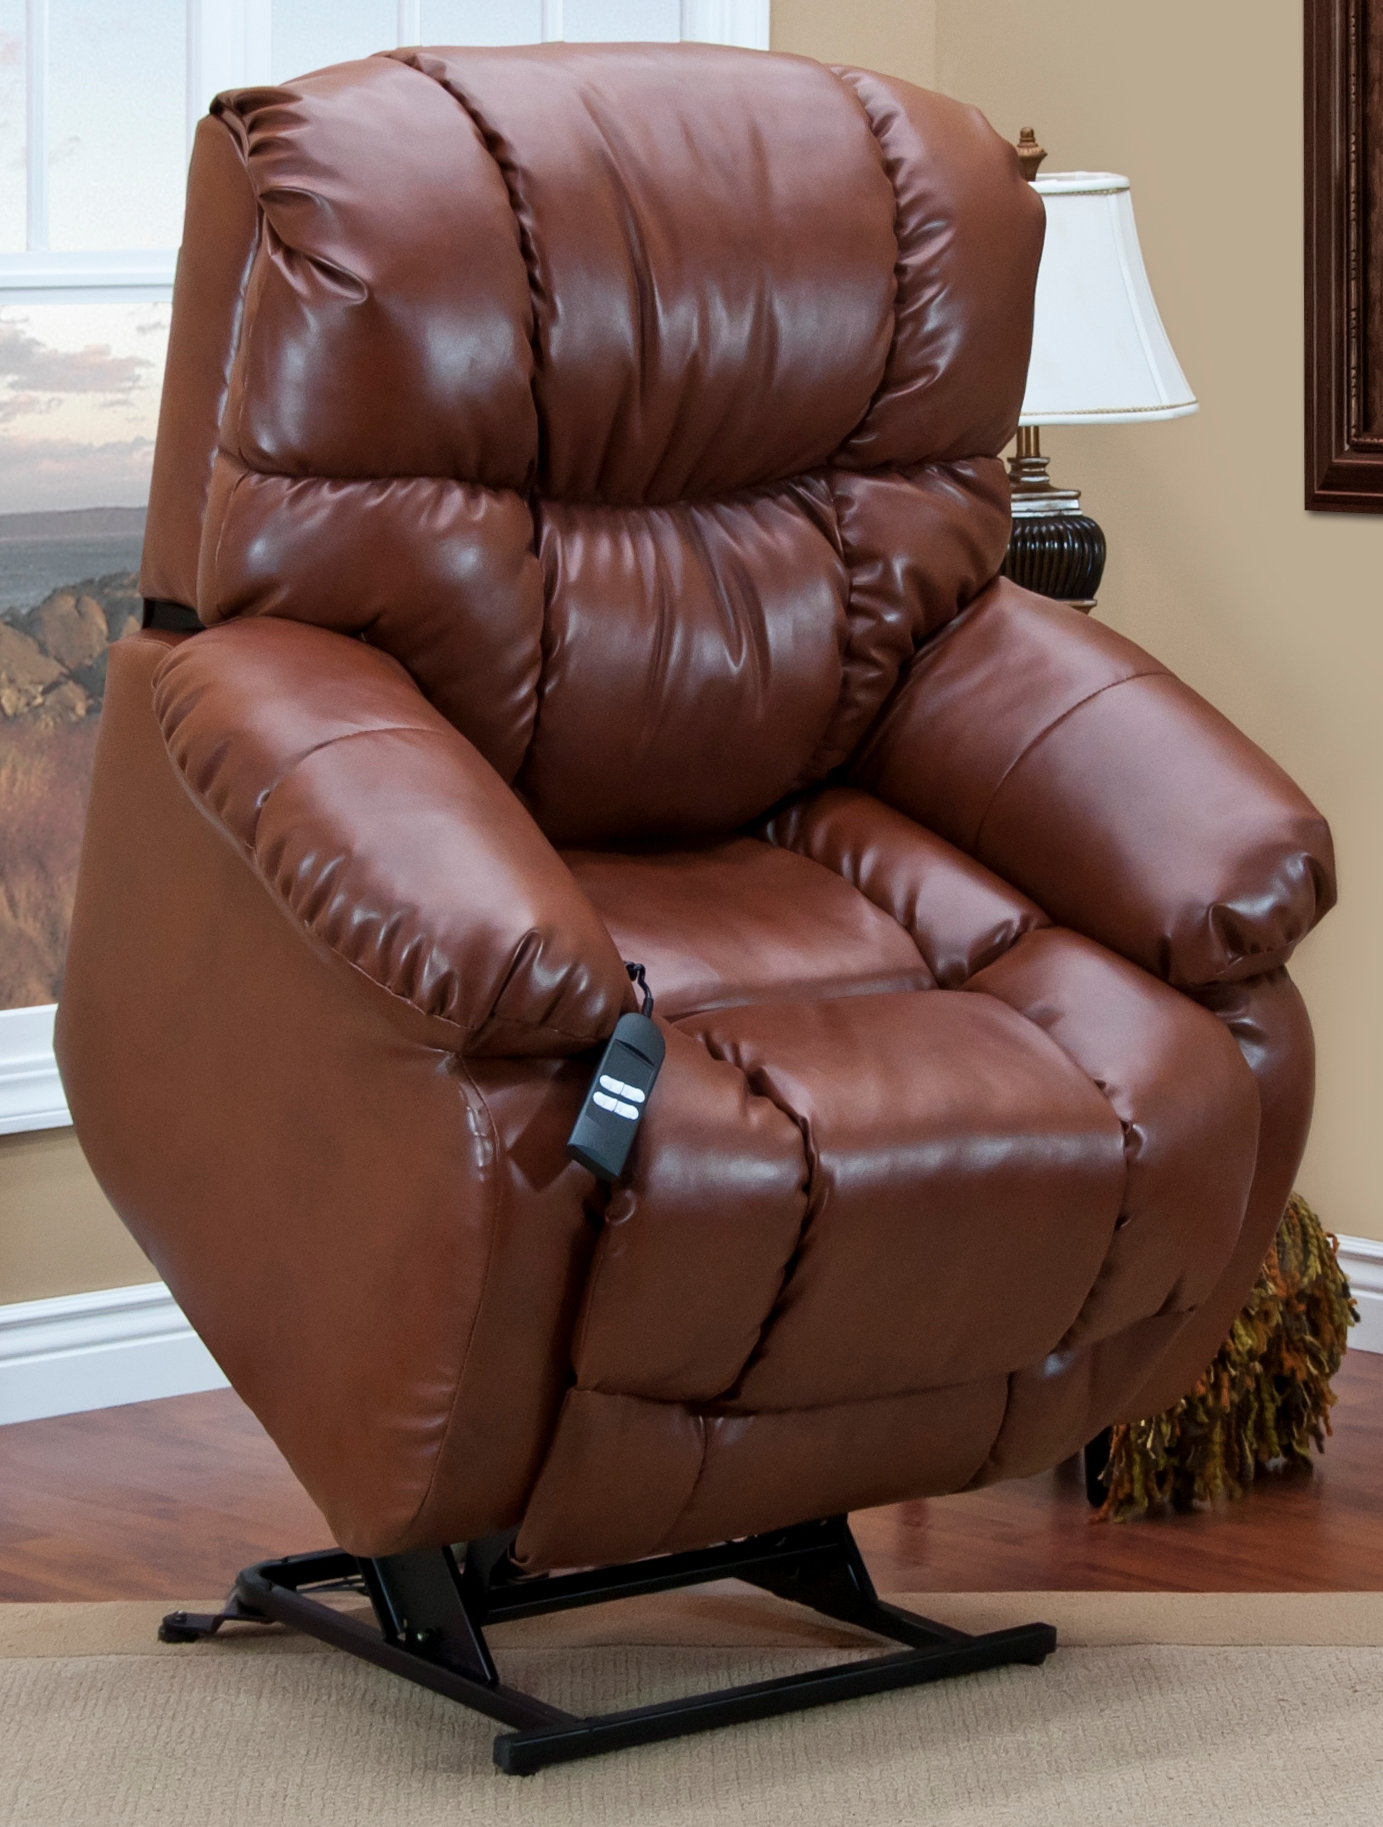 medlift chair phoenix az med-lift recliner